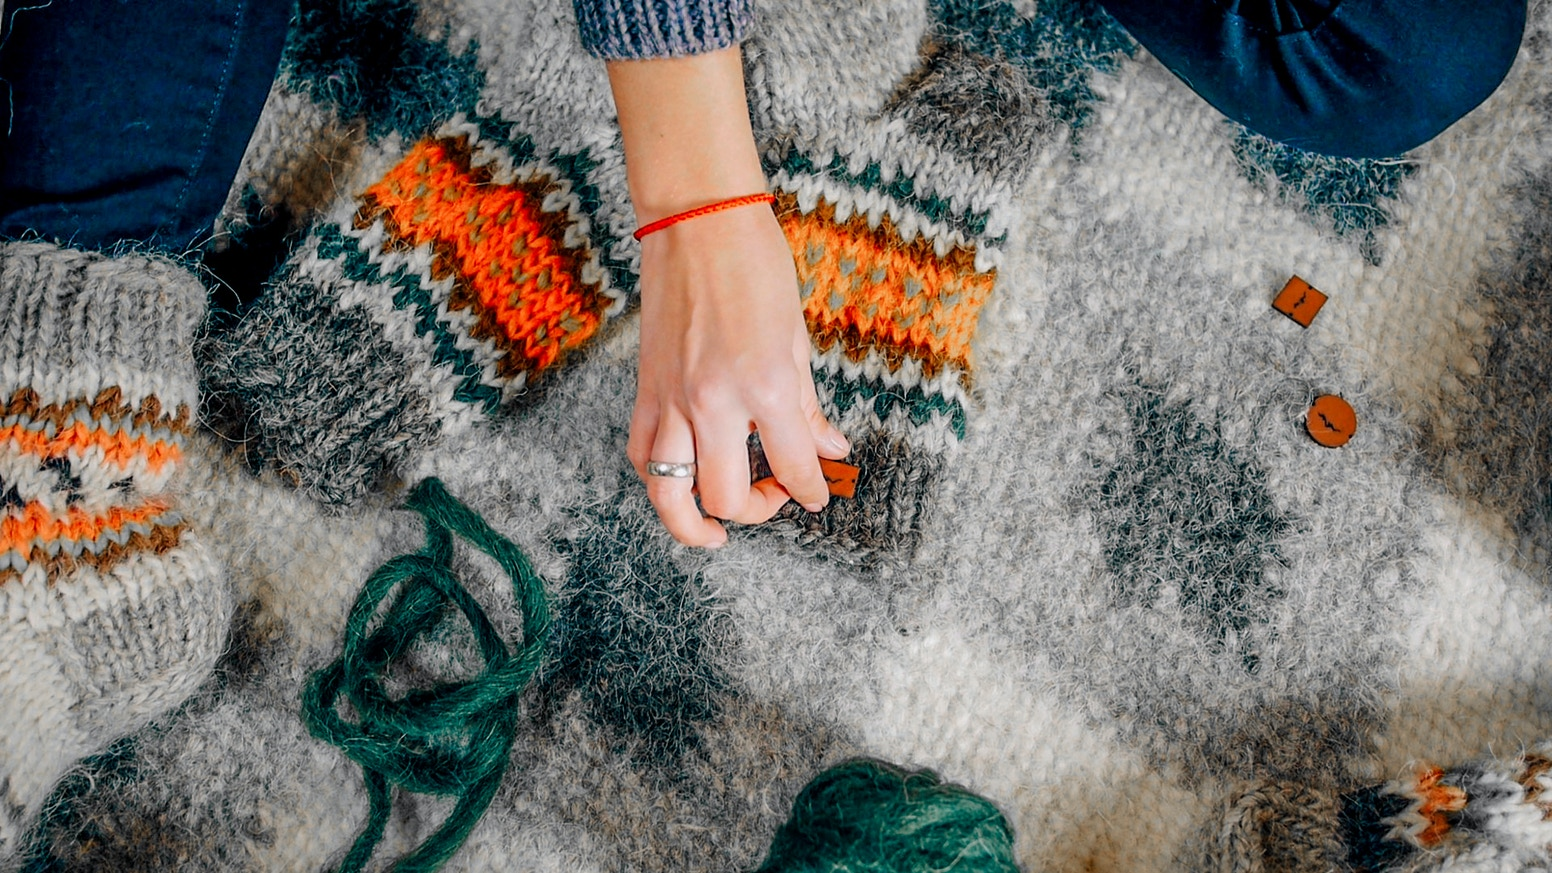 All natural handmade socks of sheep's wool which keep your feet warm with unique design from heart of Ukraine - Carpathian Mountains